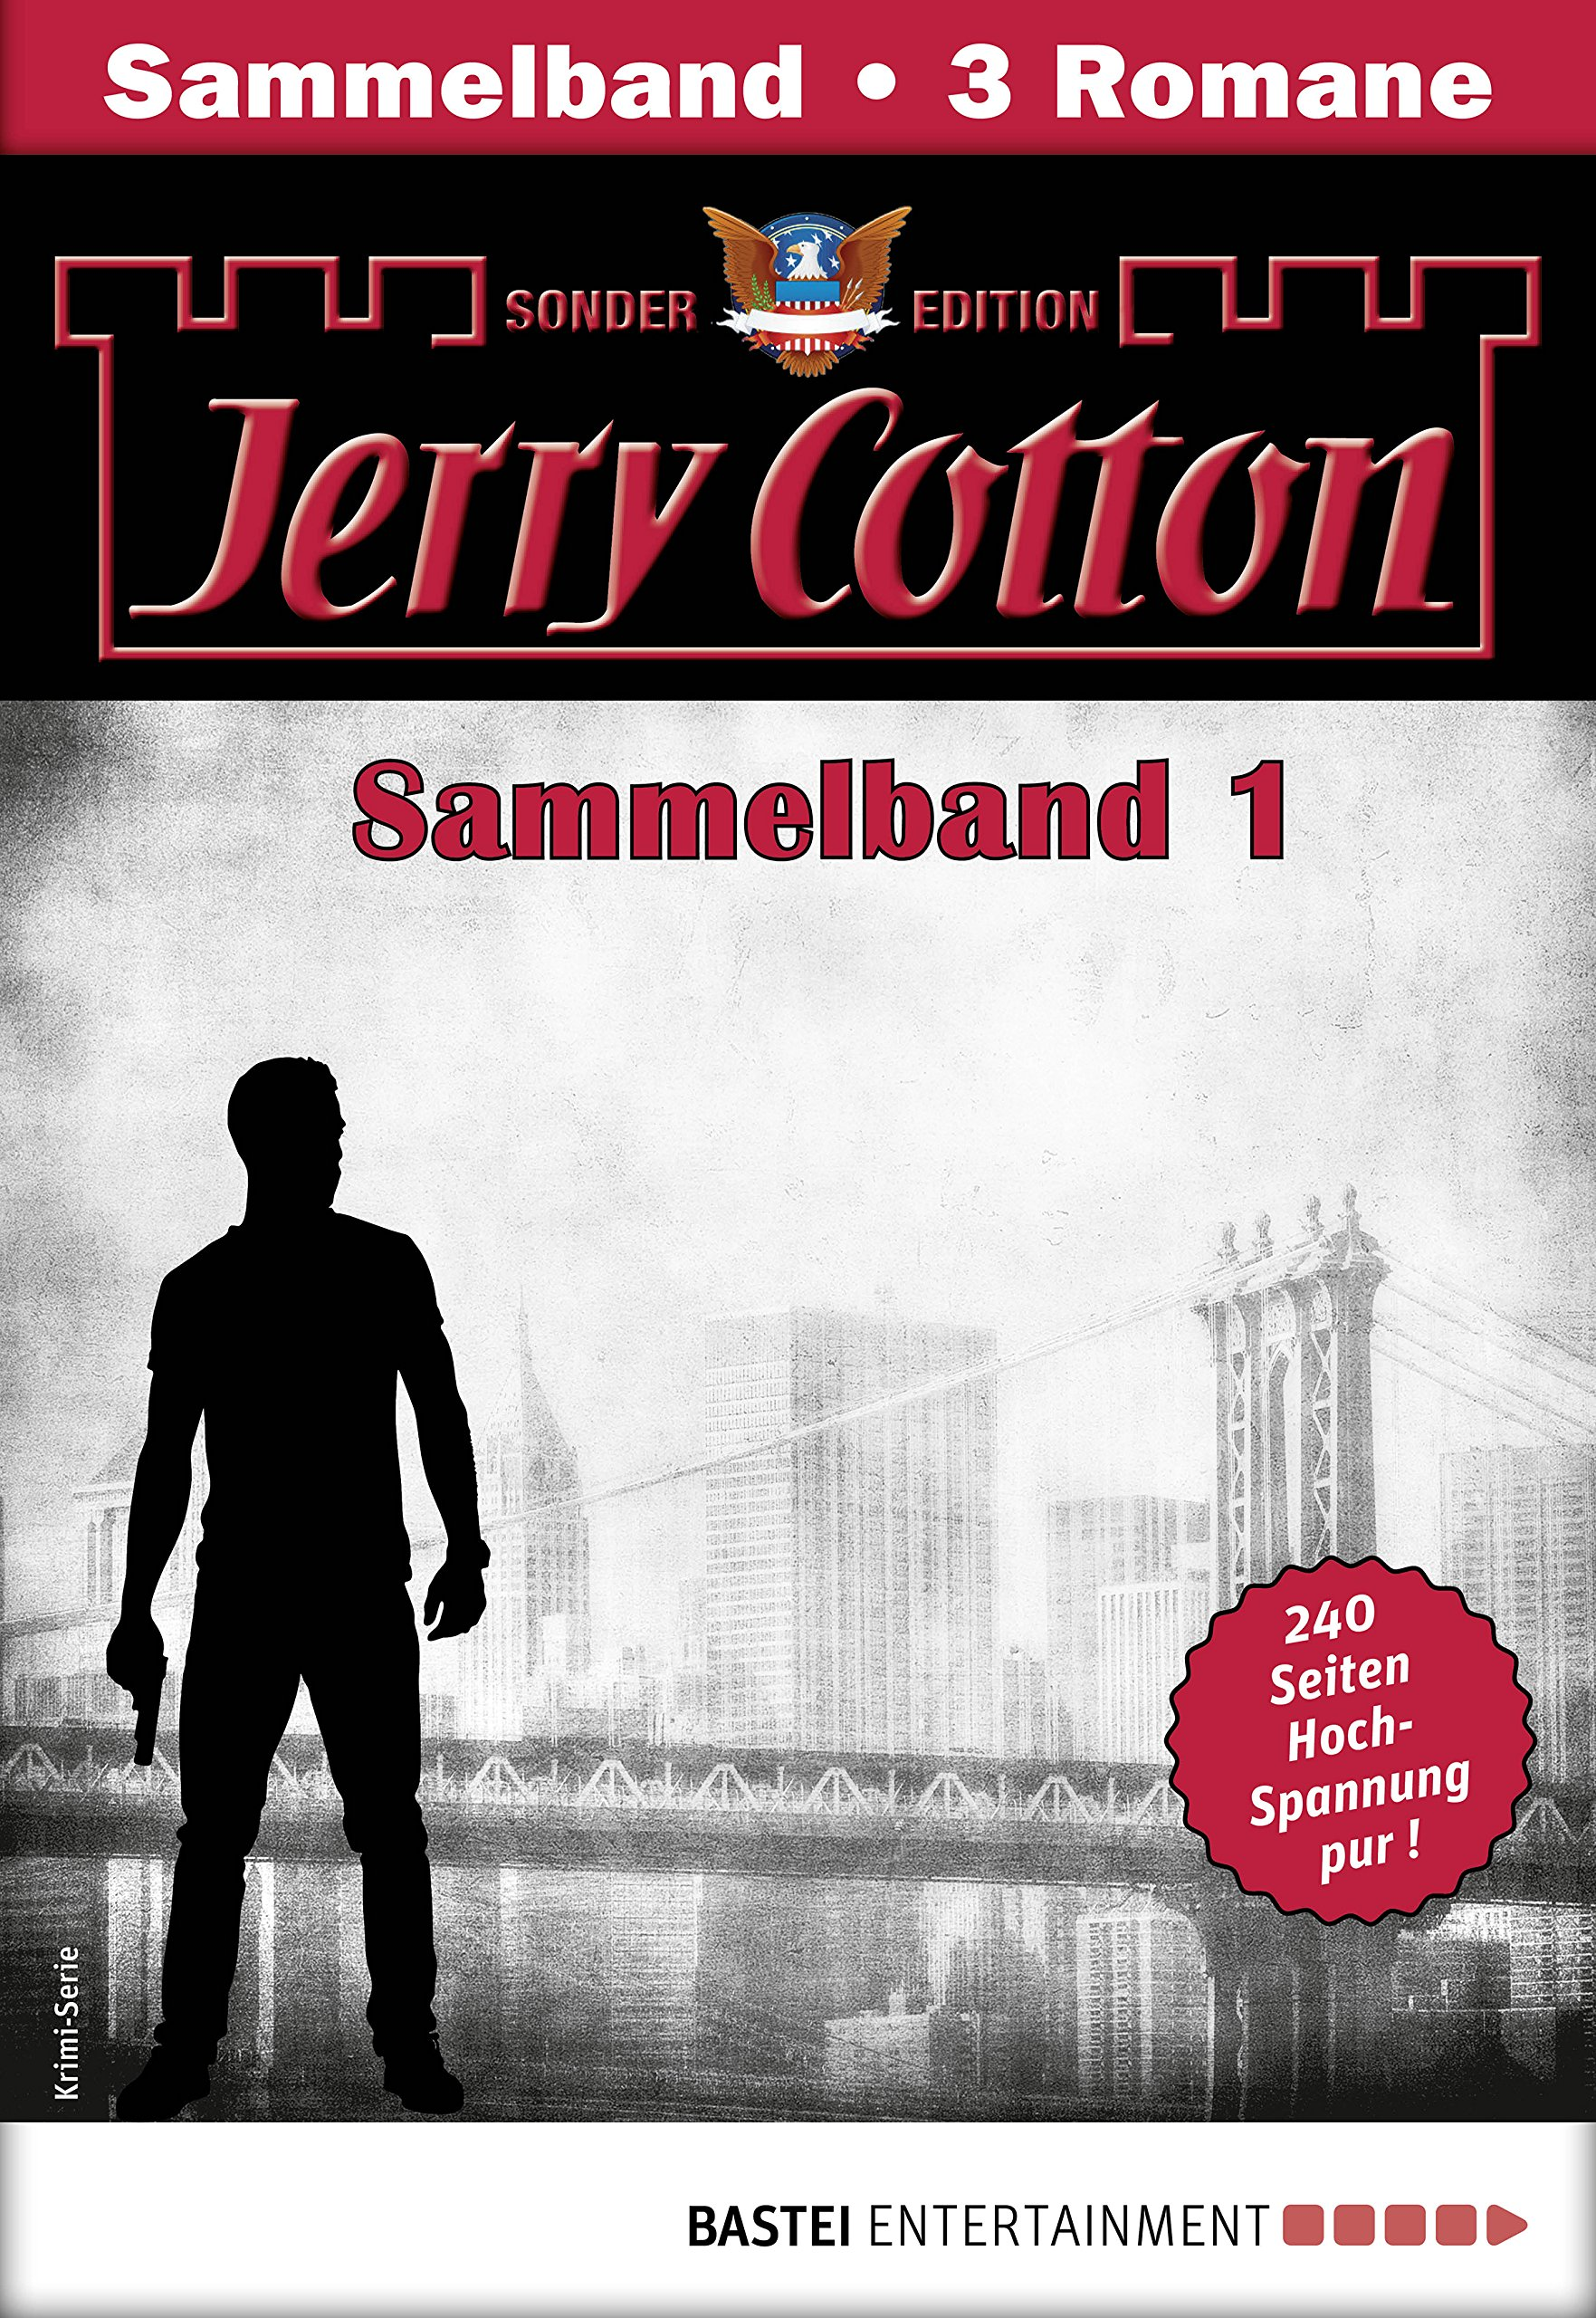 Jerry Cotton Sonder-Edition Sammelband 1 - Krimi-Serie: Folgen 1-3 (Jerry Cotton Sonder-Edition Sammelbände)